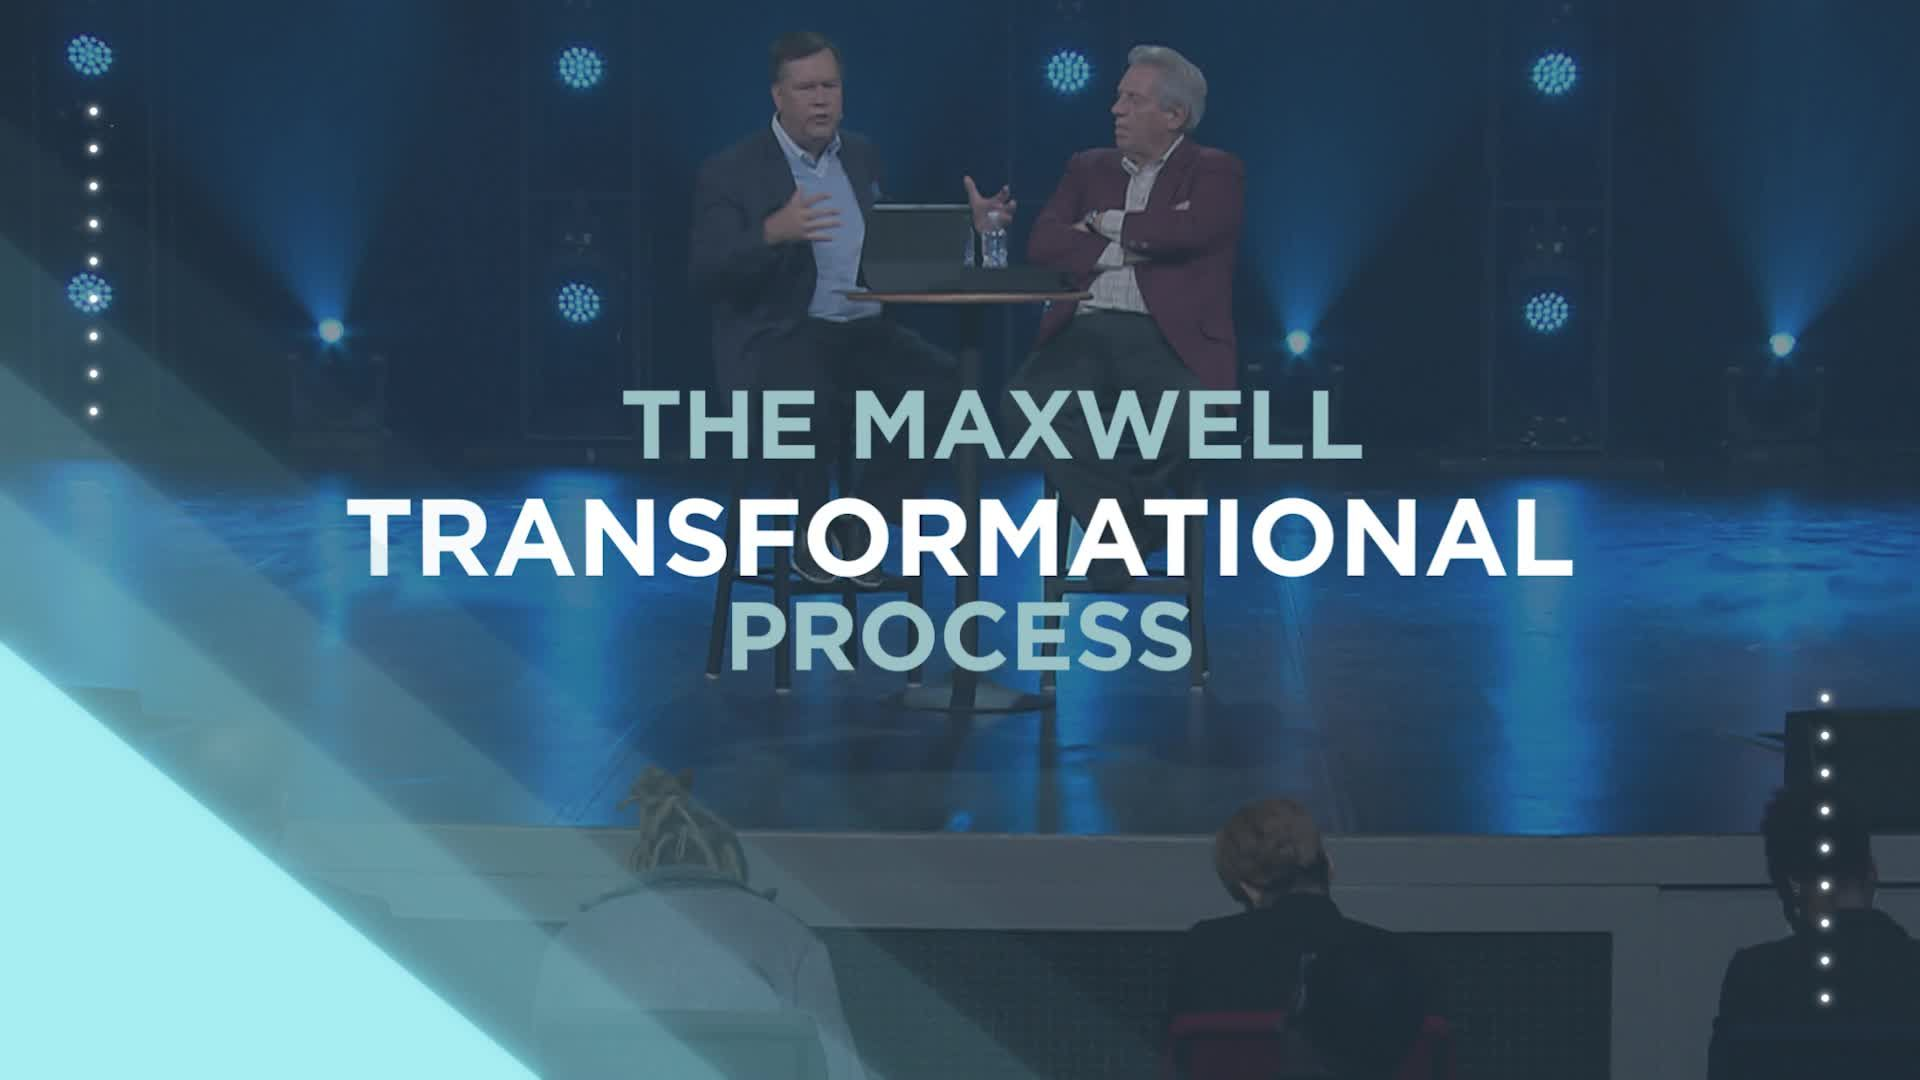 The Maxwell Transformational Process - Part 1